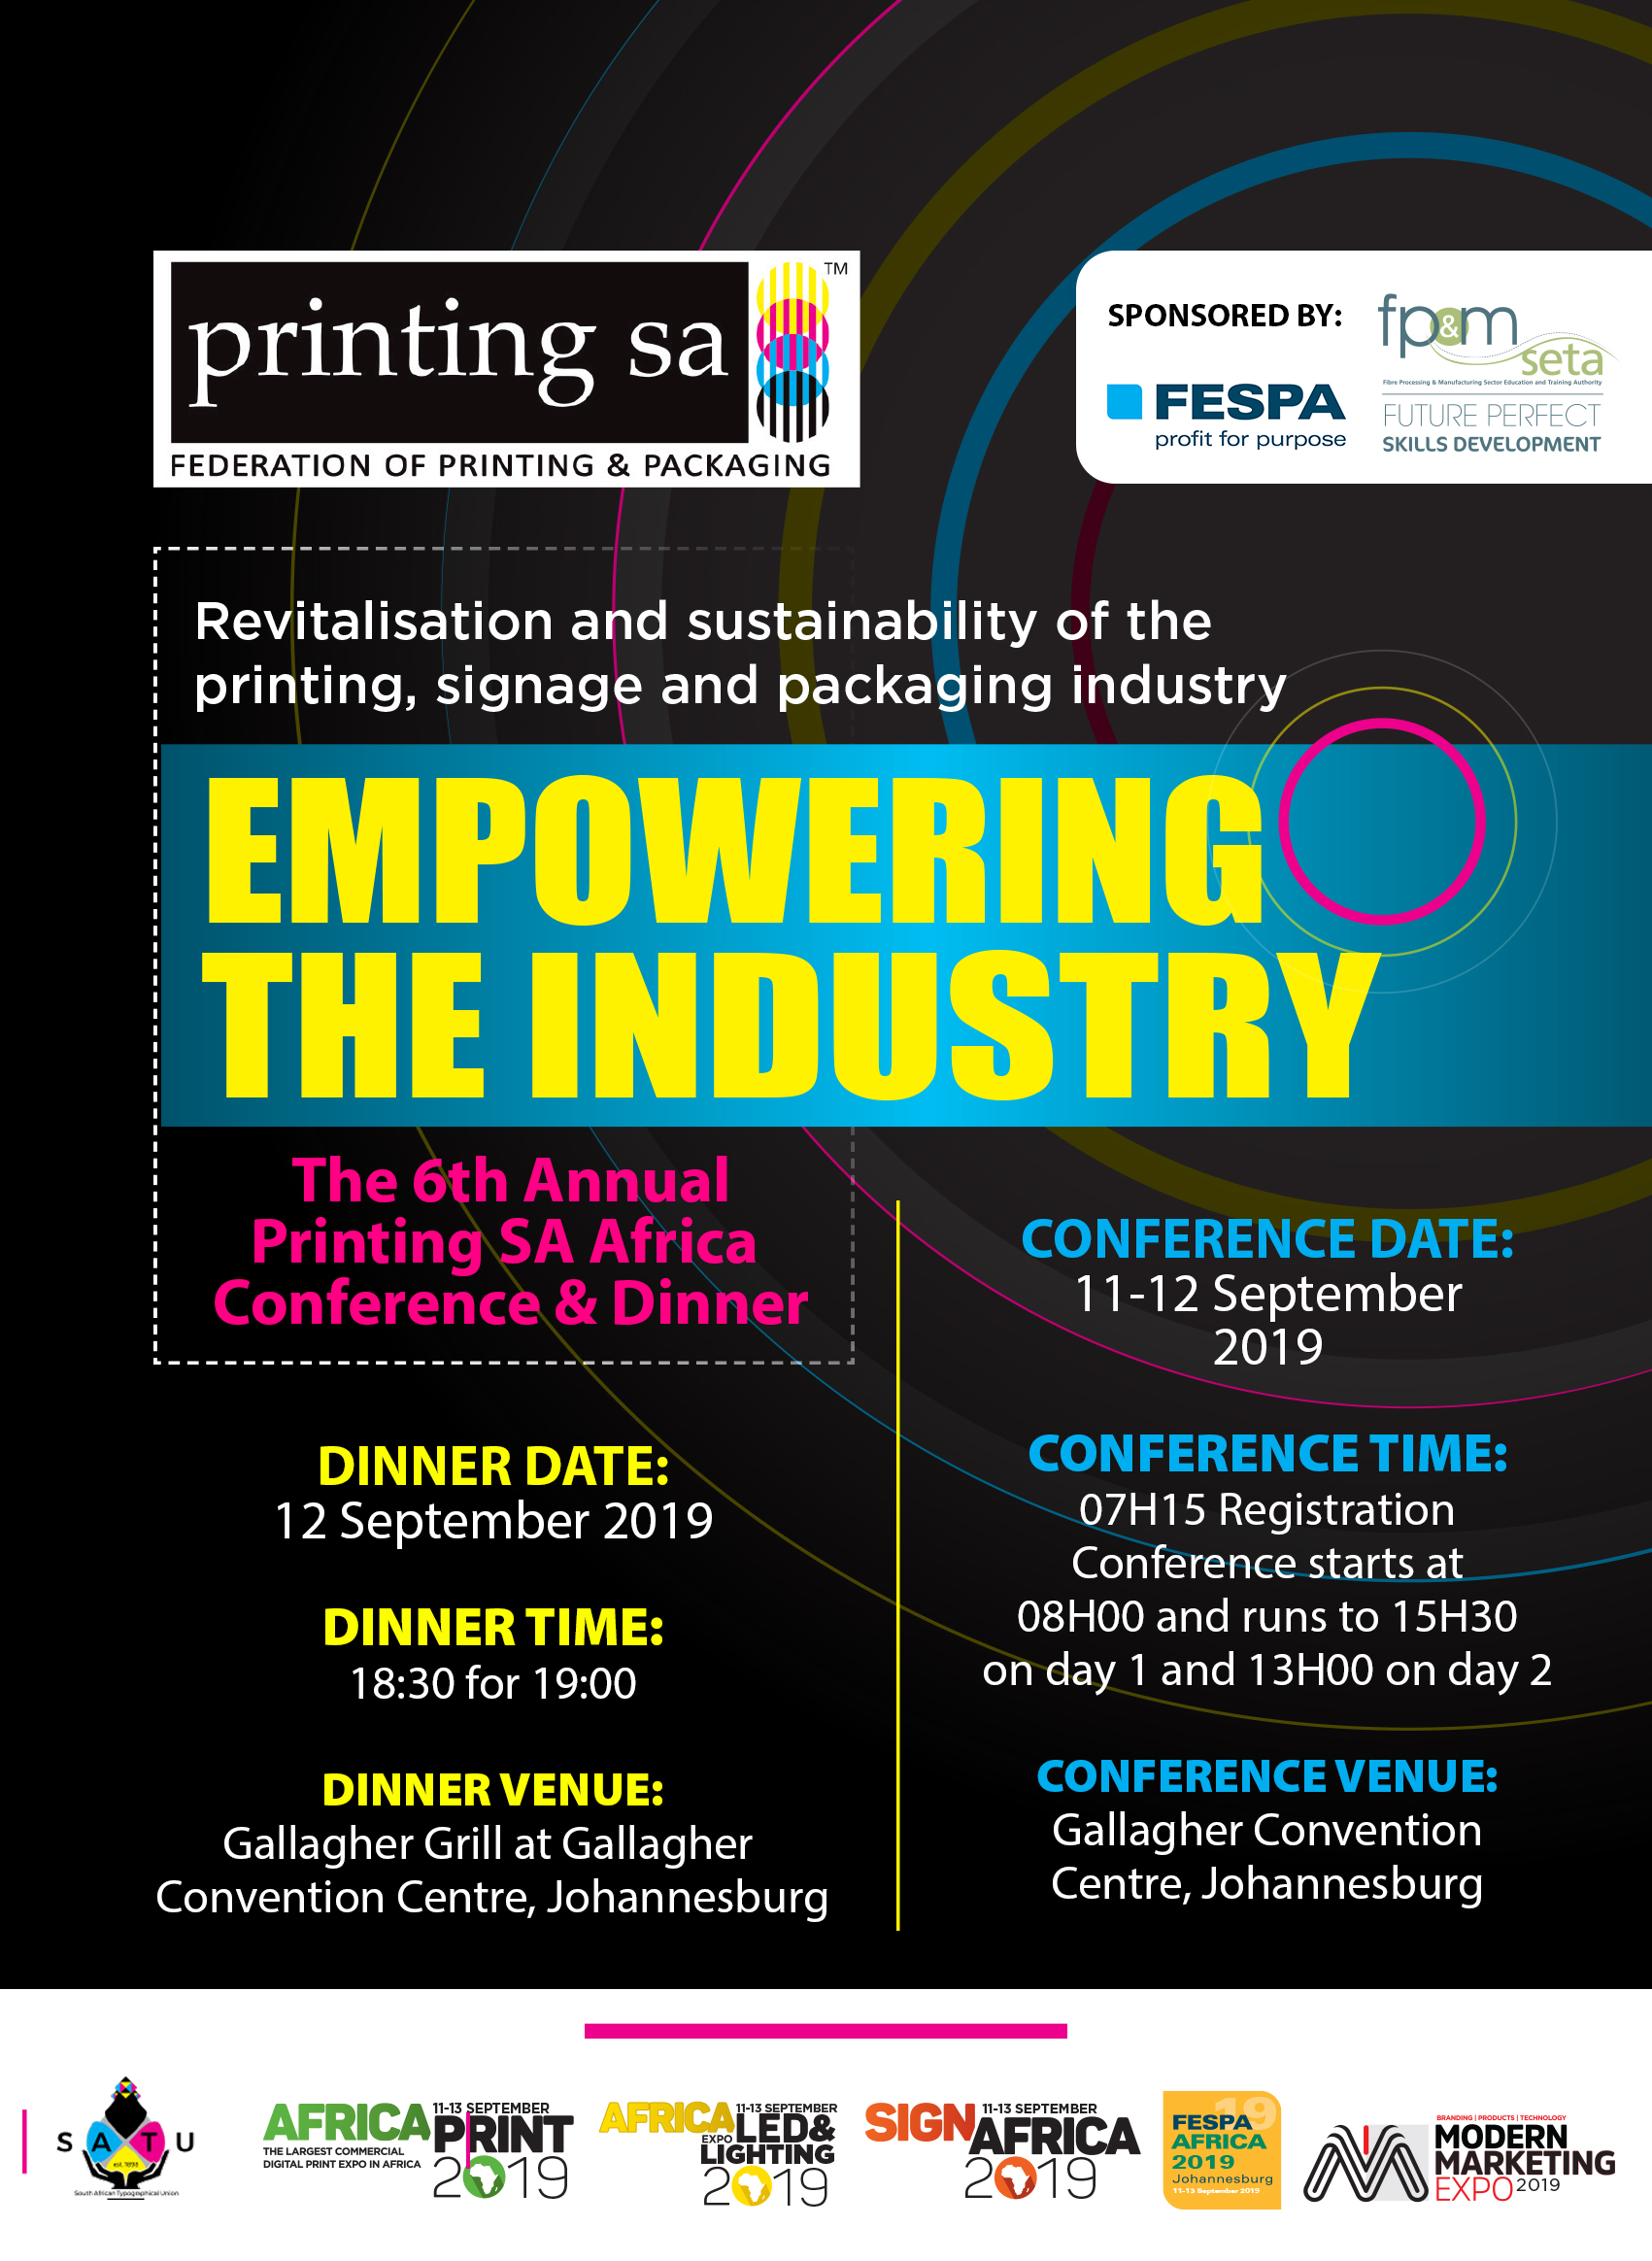 Printing SA Africa Conference and Annual Dinner - Africa Print Expo